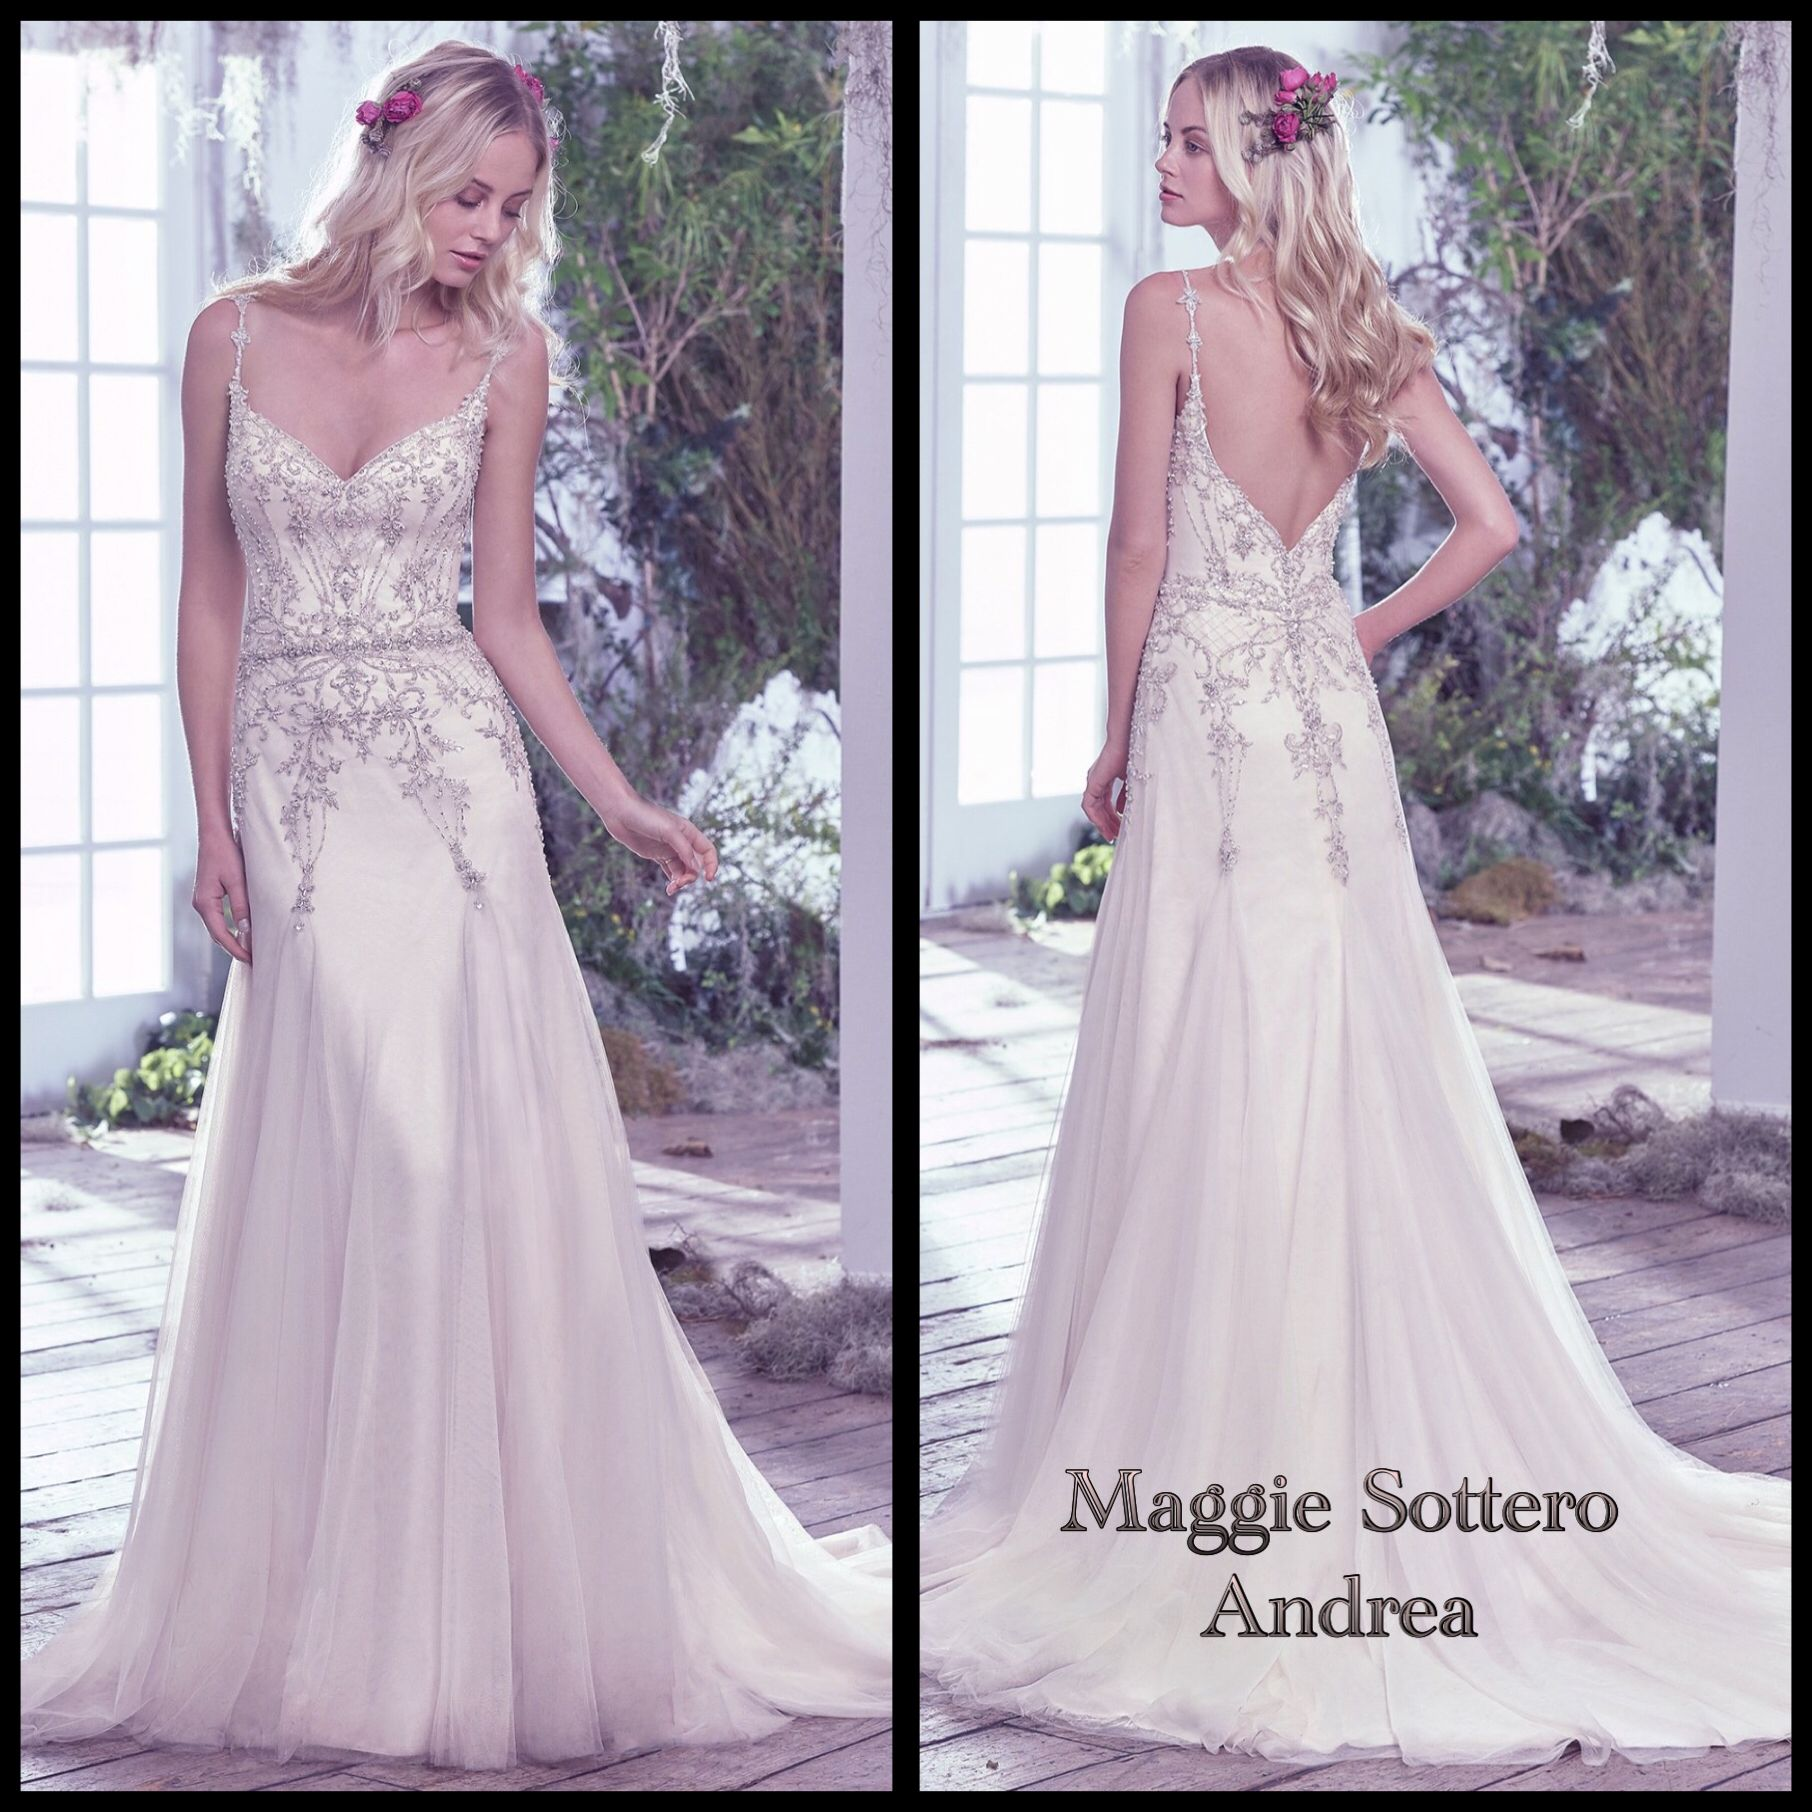 Wedding Gown Warehouse: Maggie Sottero Andrea